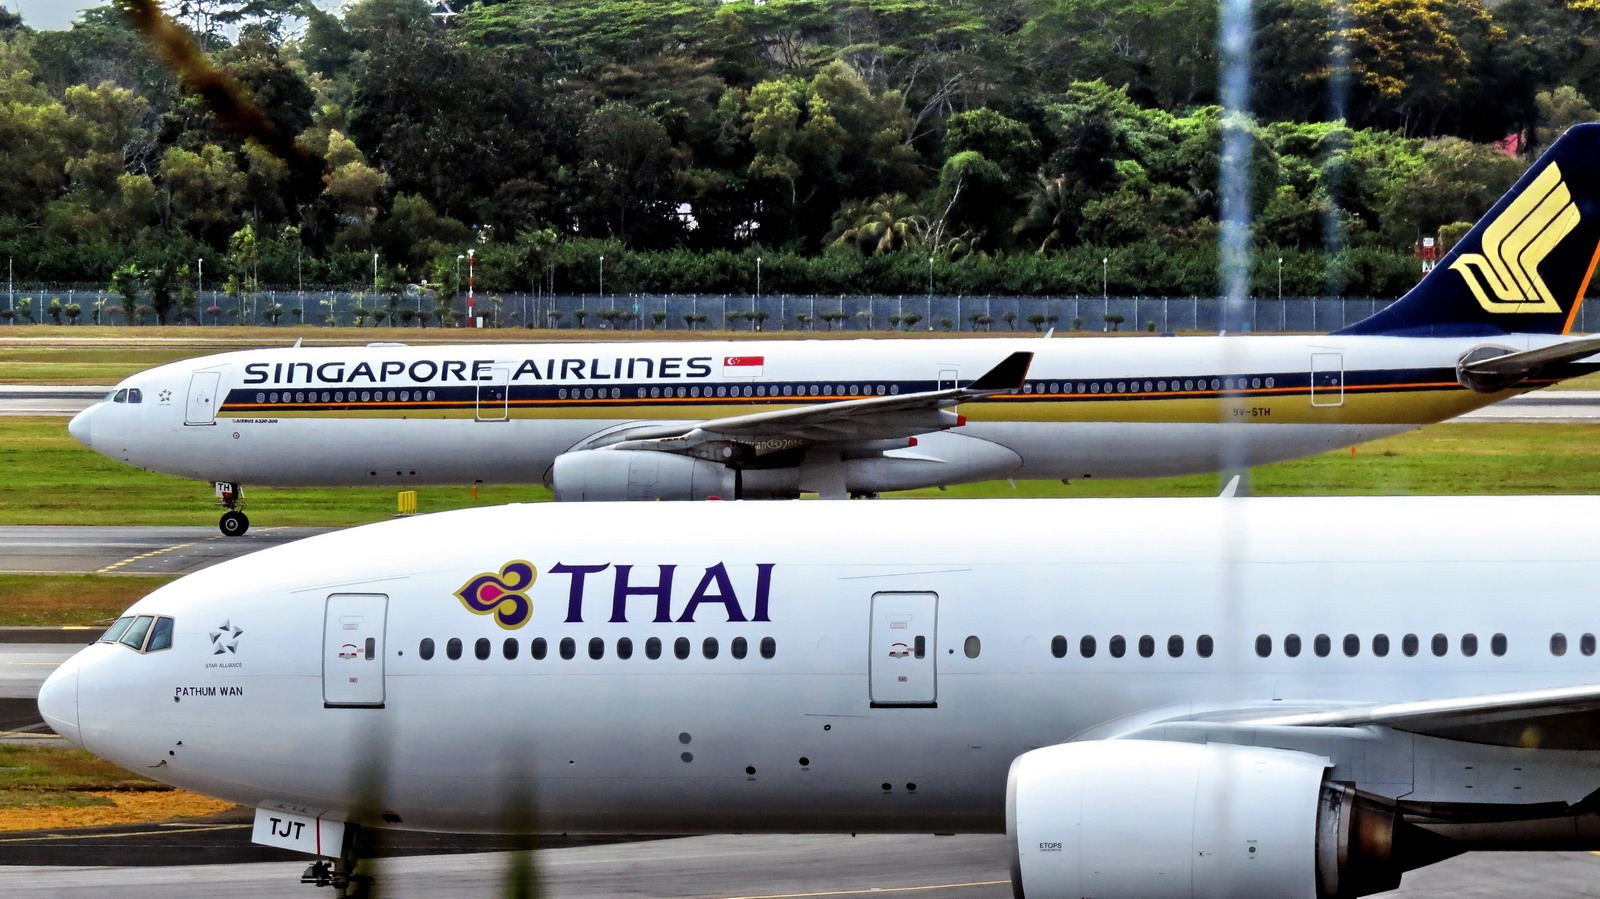 Singapore and Thai airliners on the ground